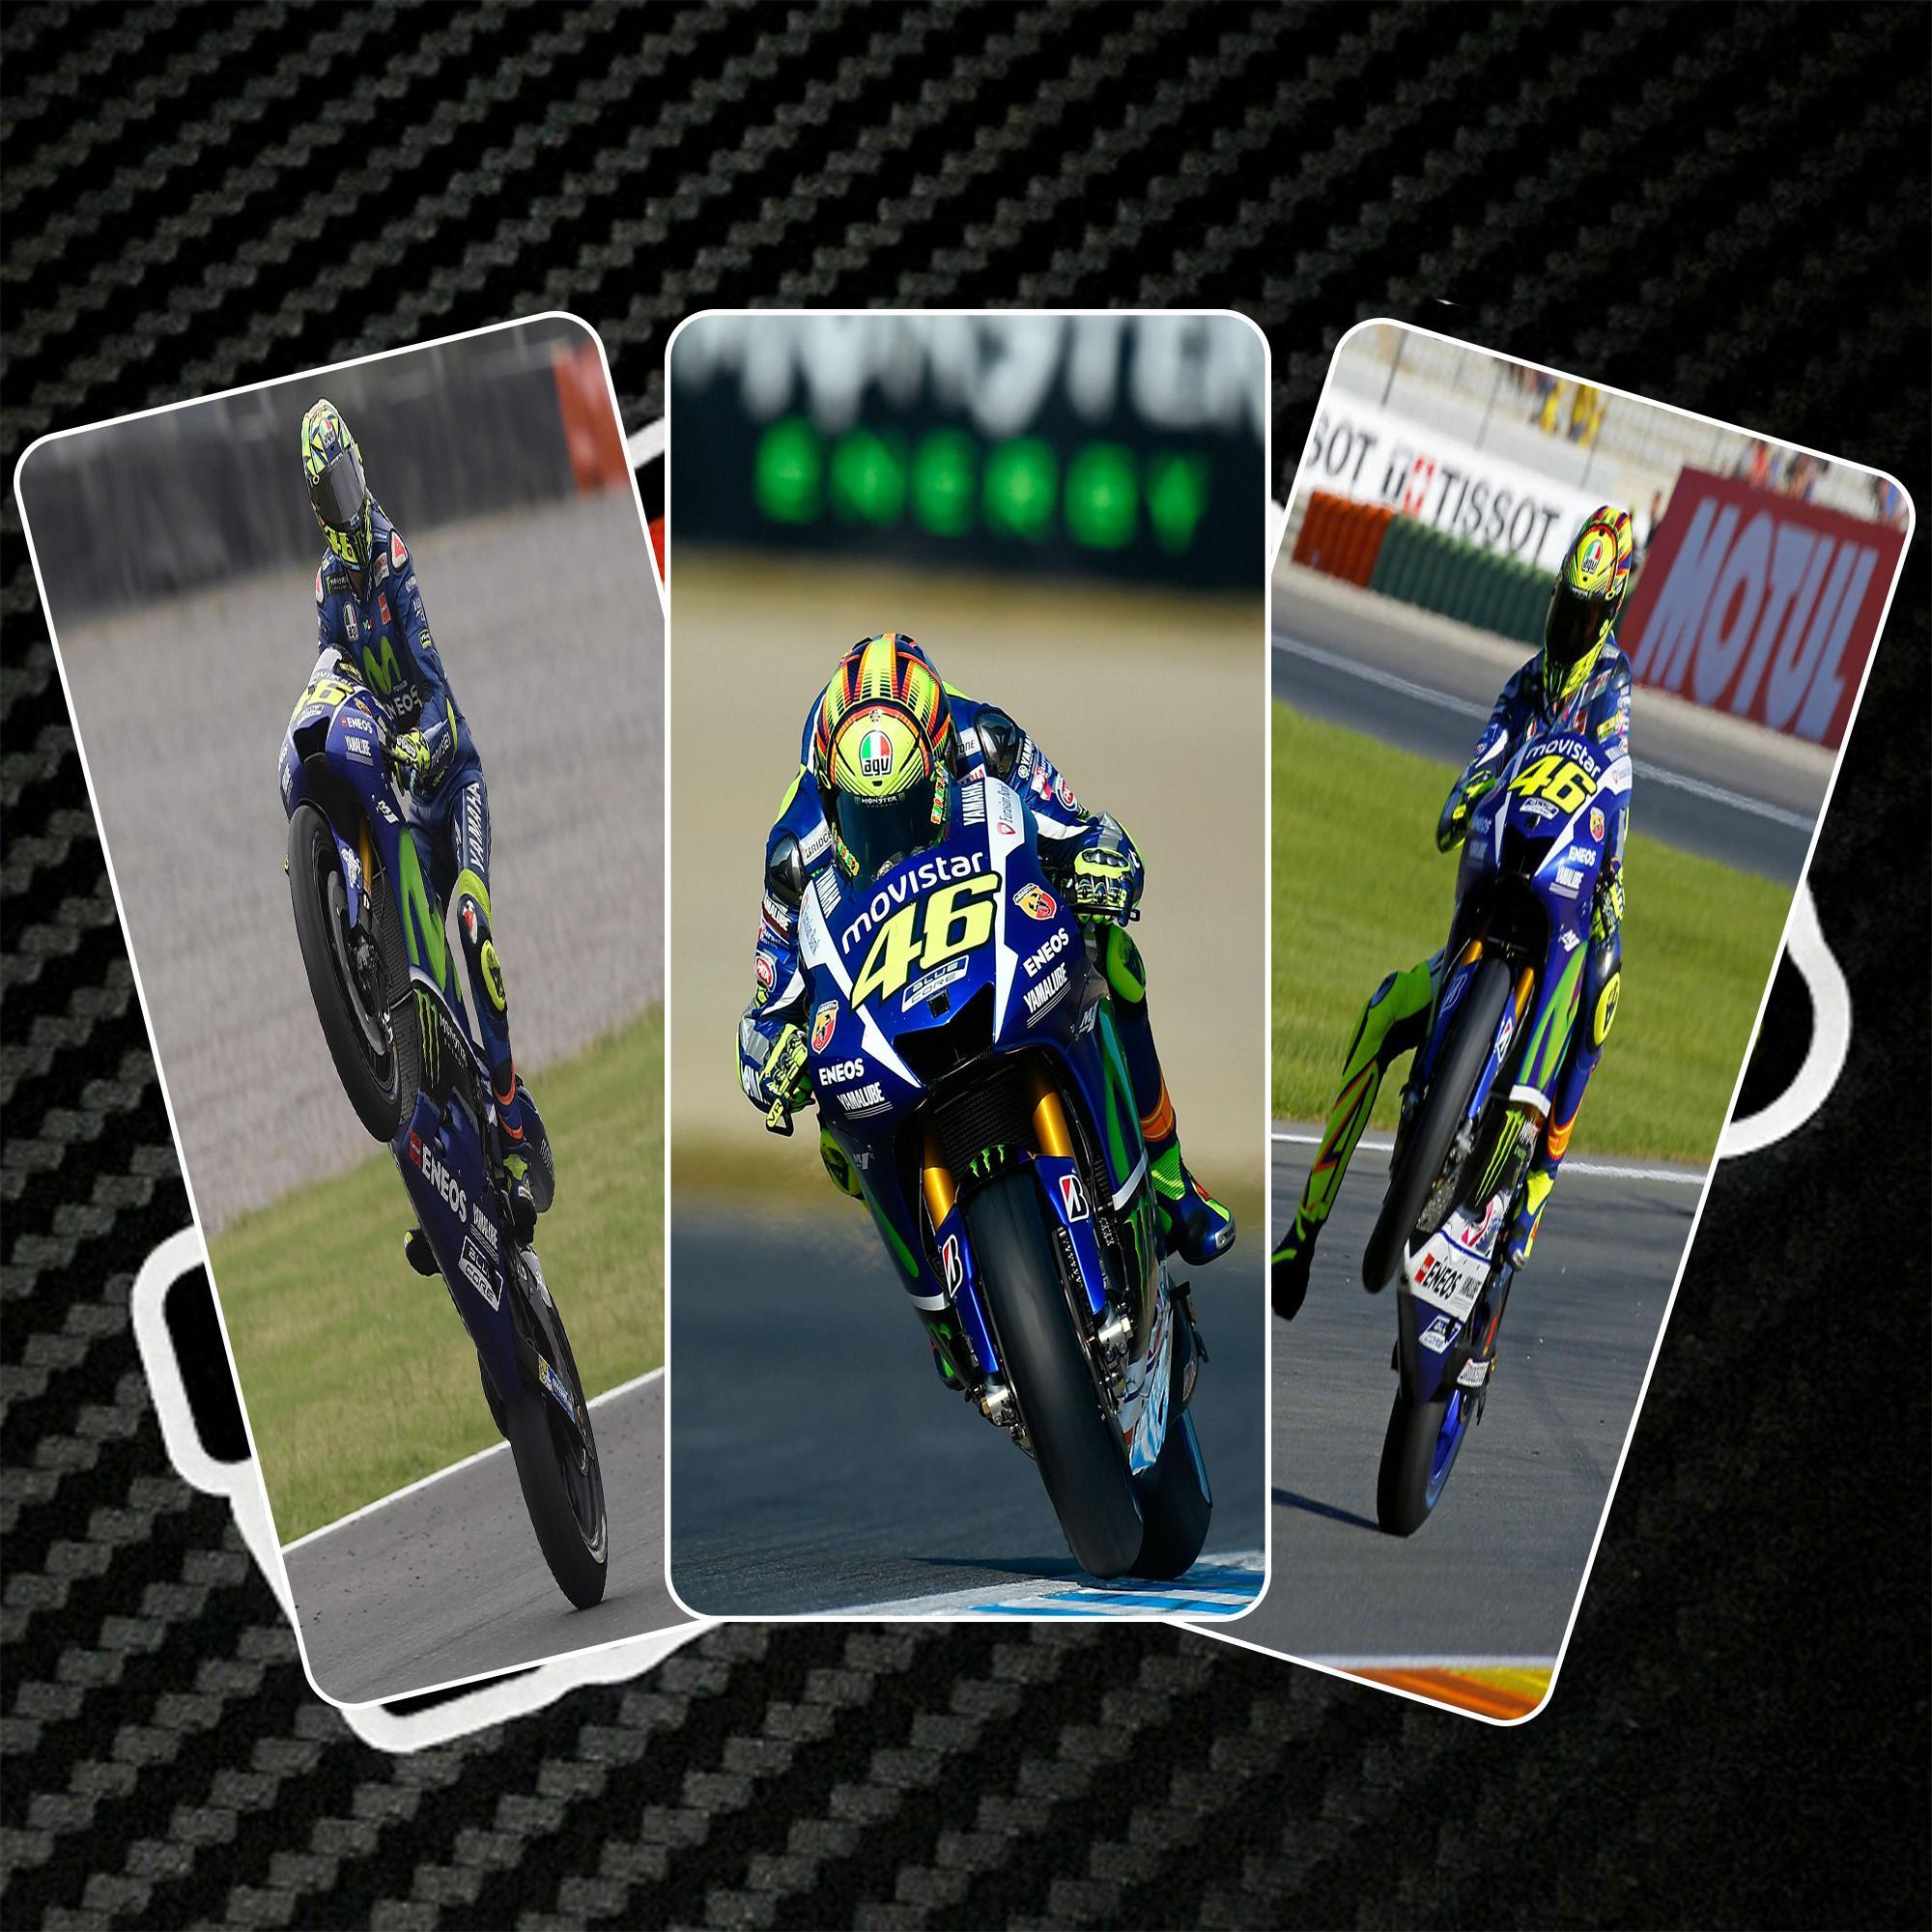 Valentino Rossi Wallpaper 4k 2019 For Android Apk Download